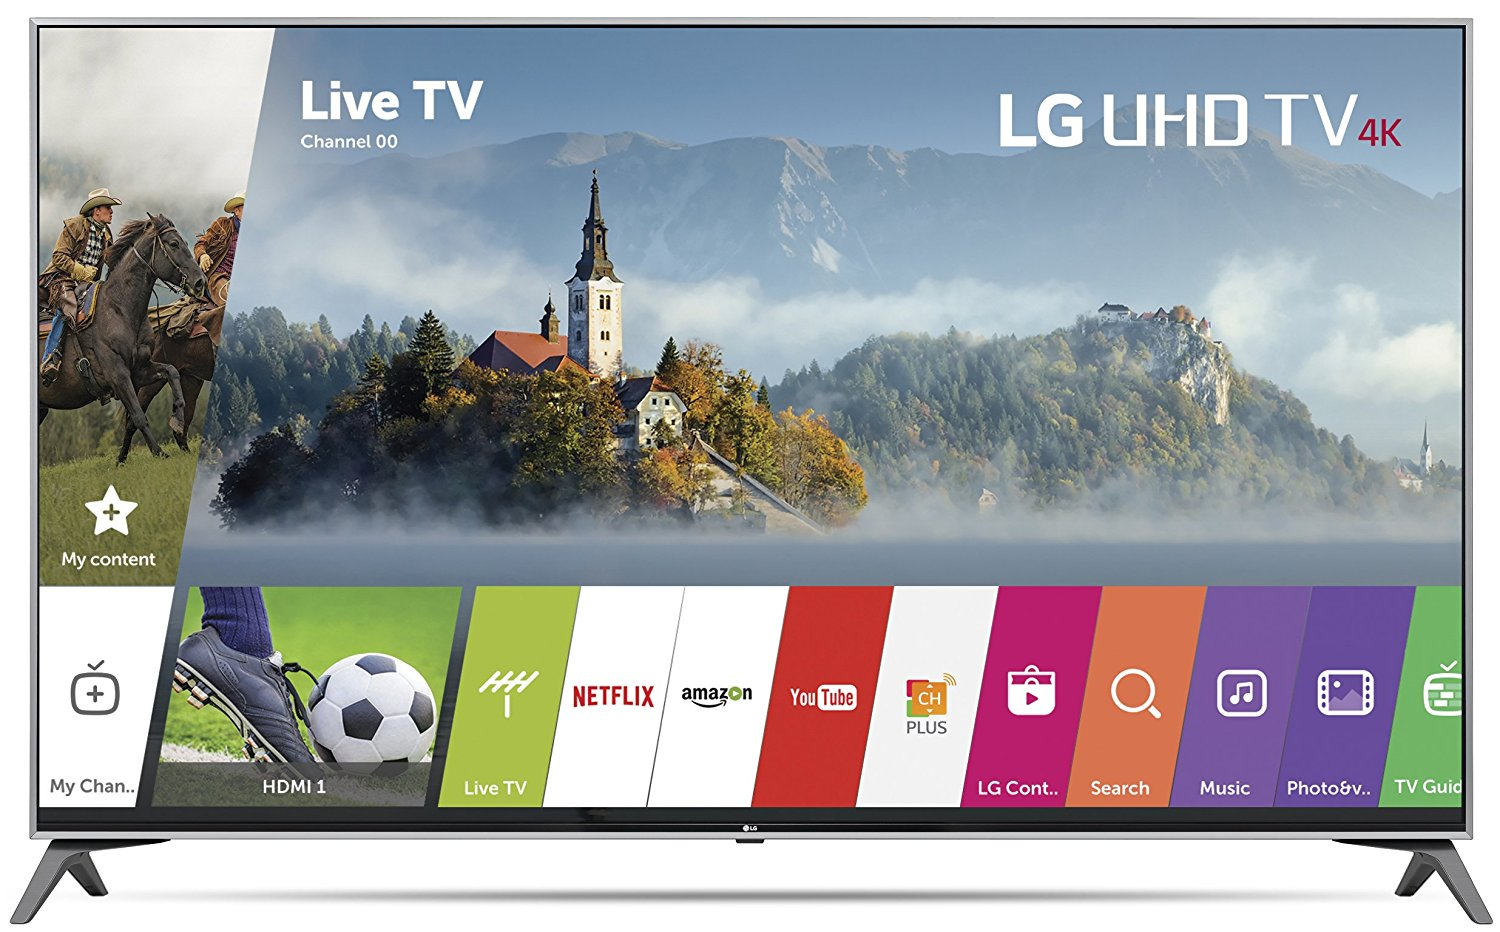 An image of LG 55UJ7700 55-Inch HDR 4K LED 120Hz Smart TV with LG TruMotion 120